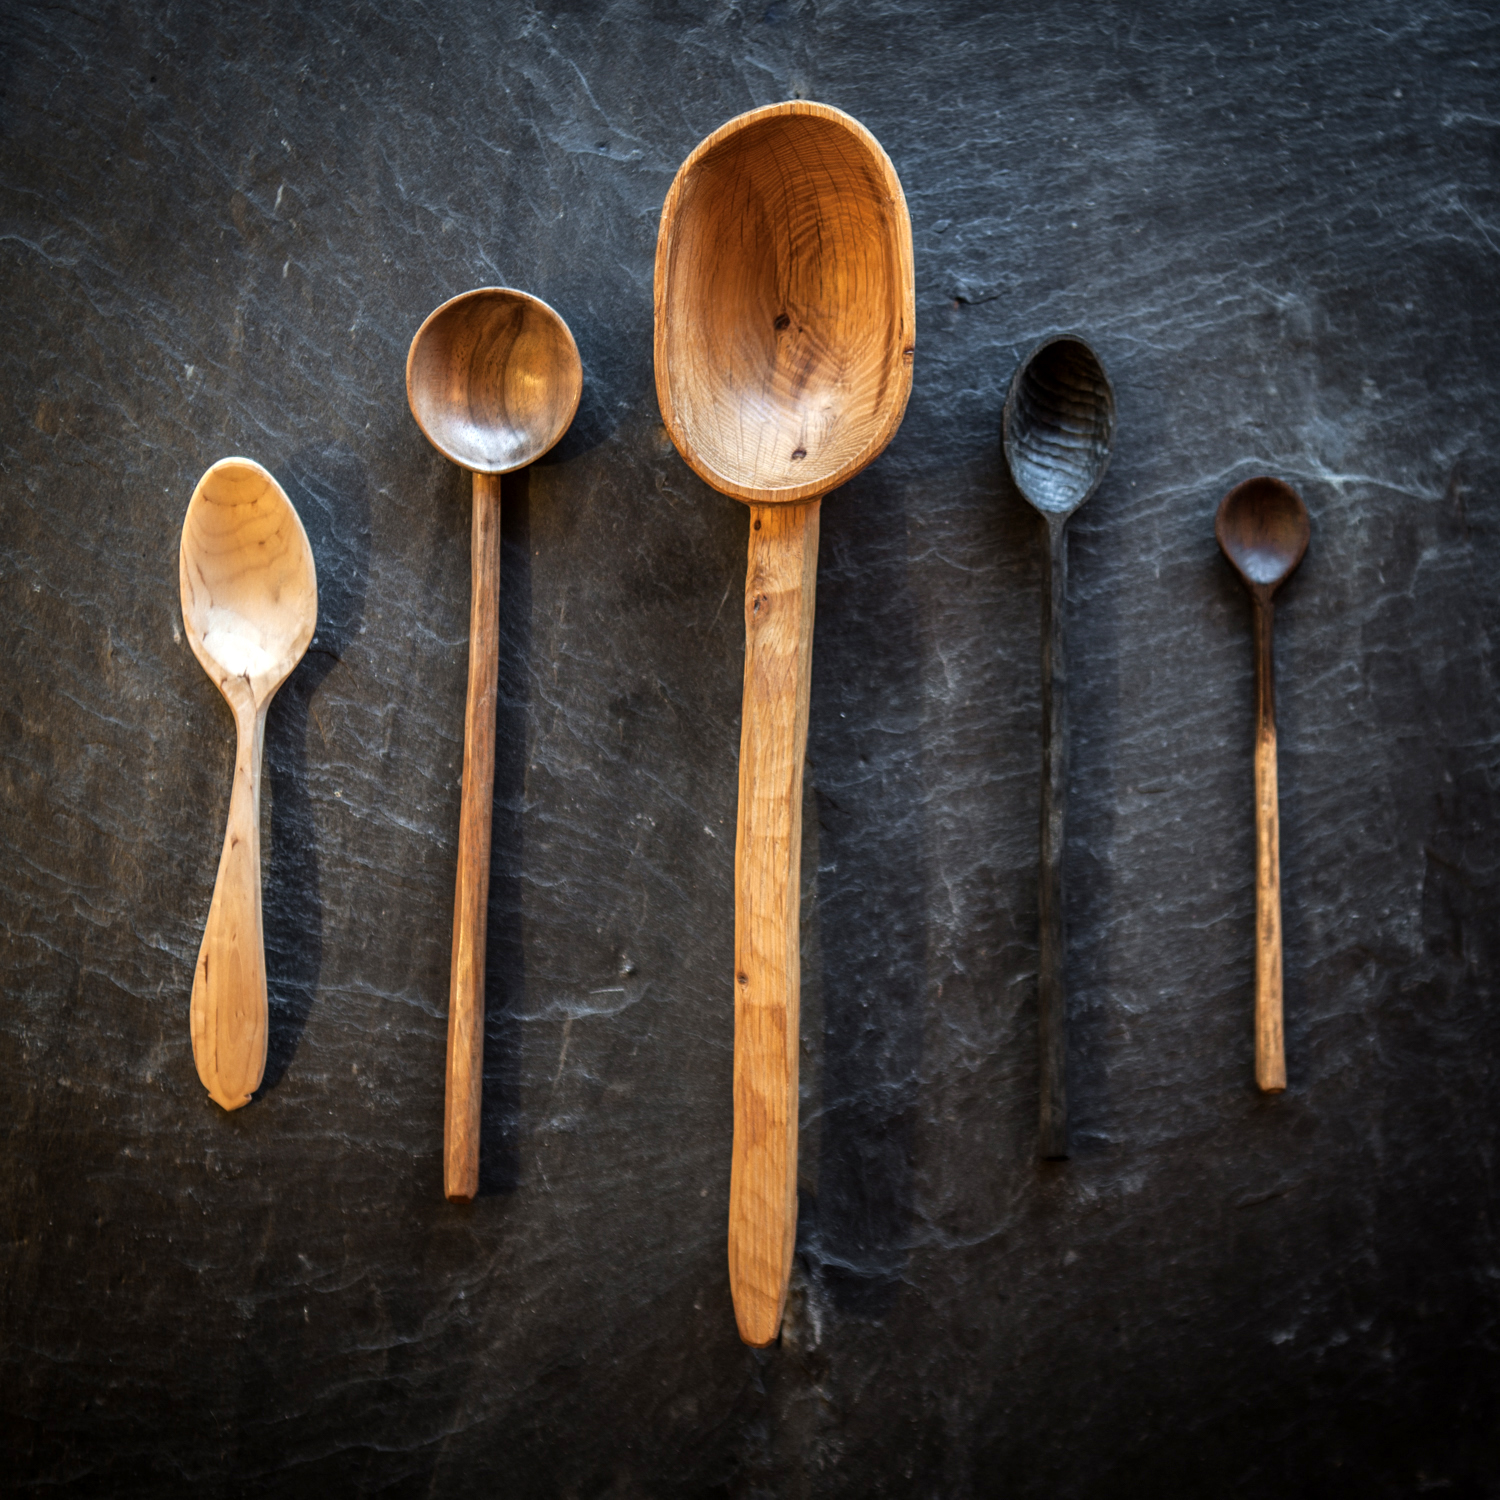 Handmade Wooden Spoons The Whittlings